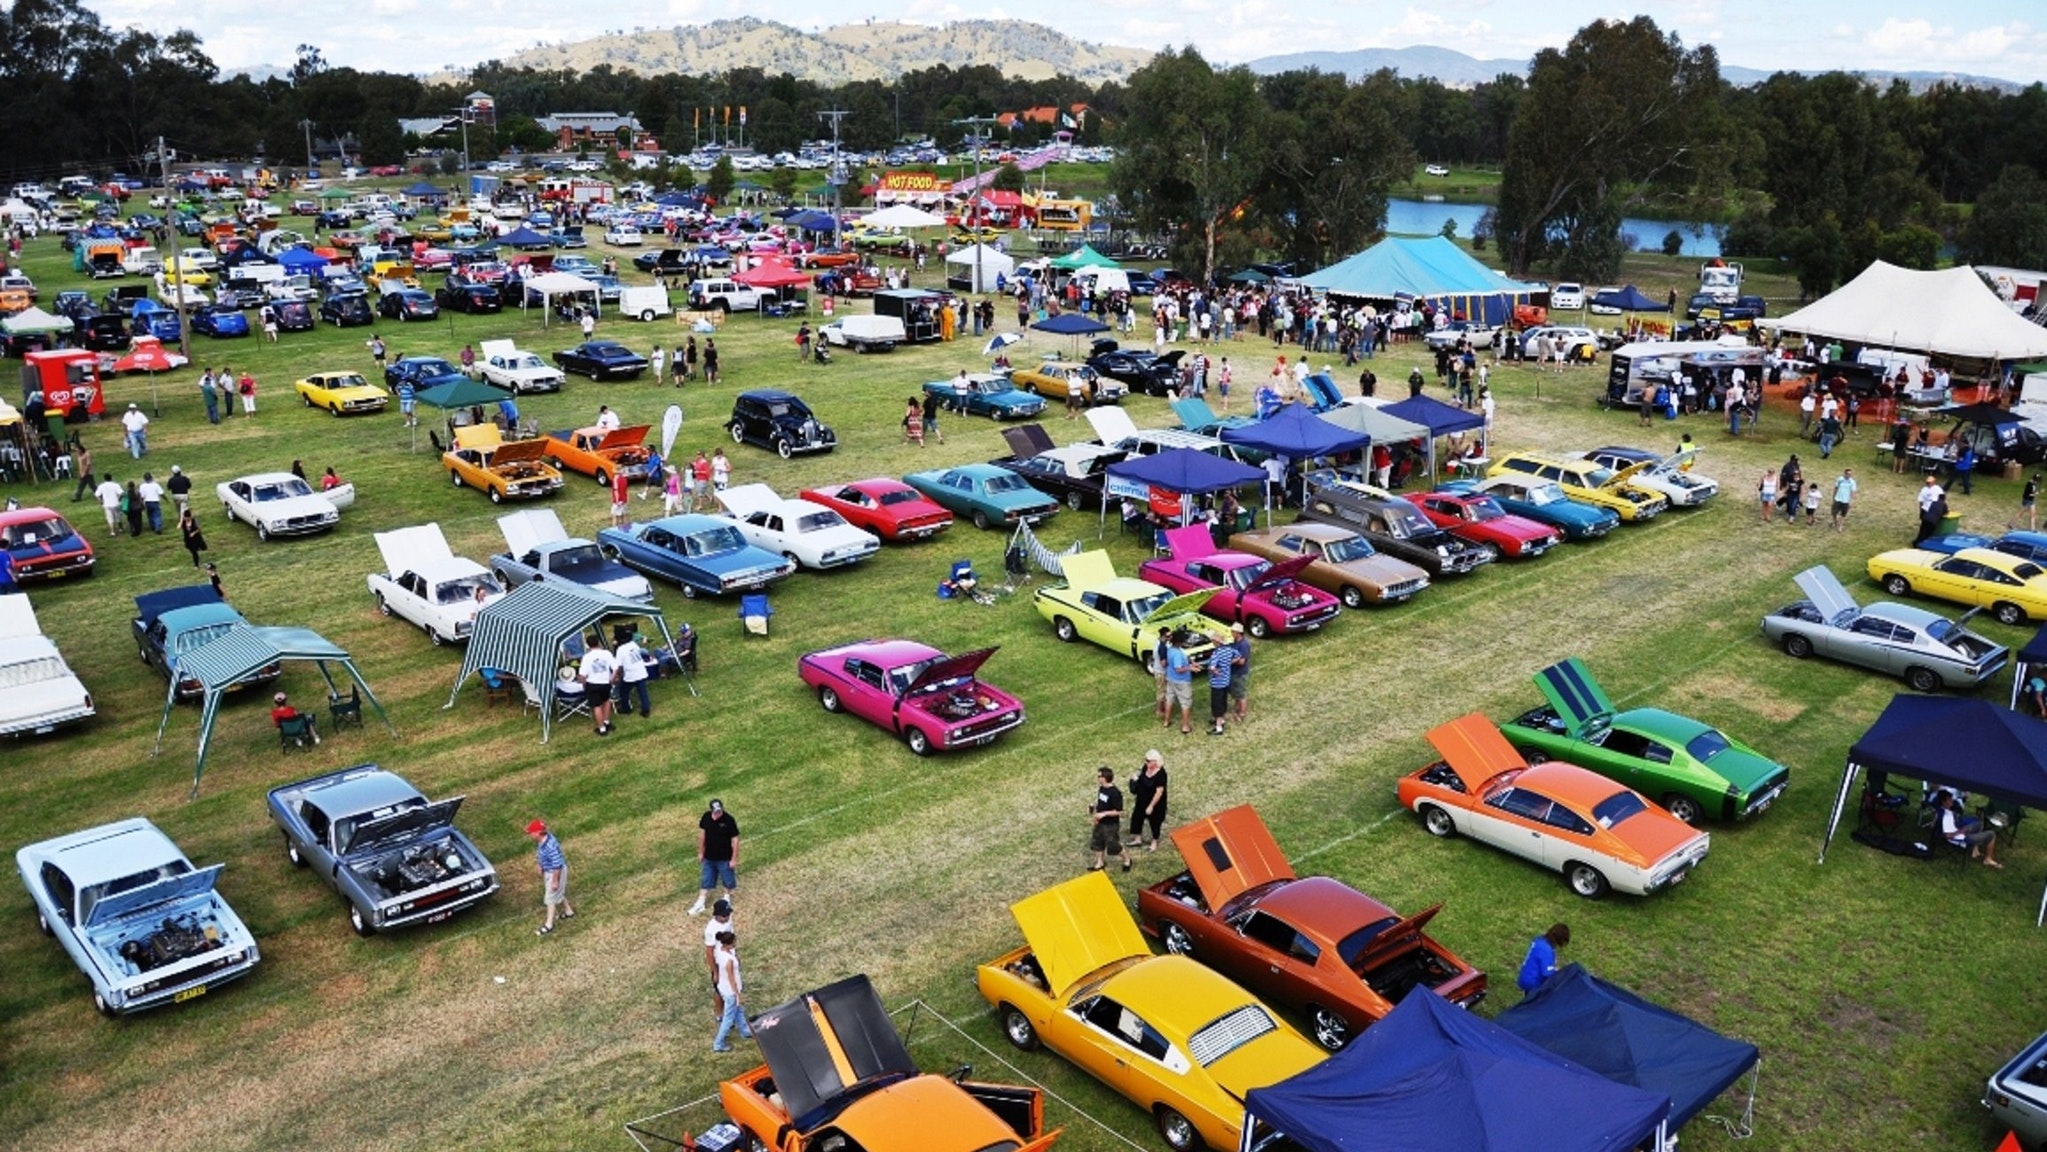 24th annual Chryslers on the Murray